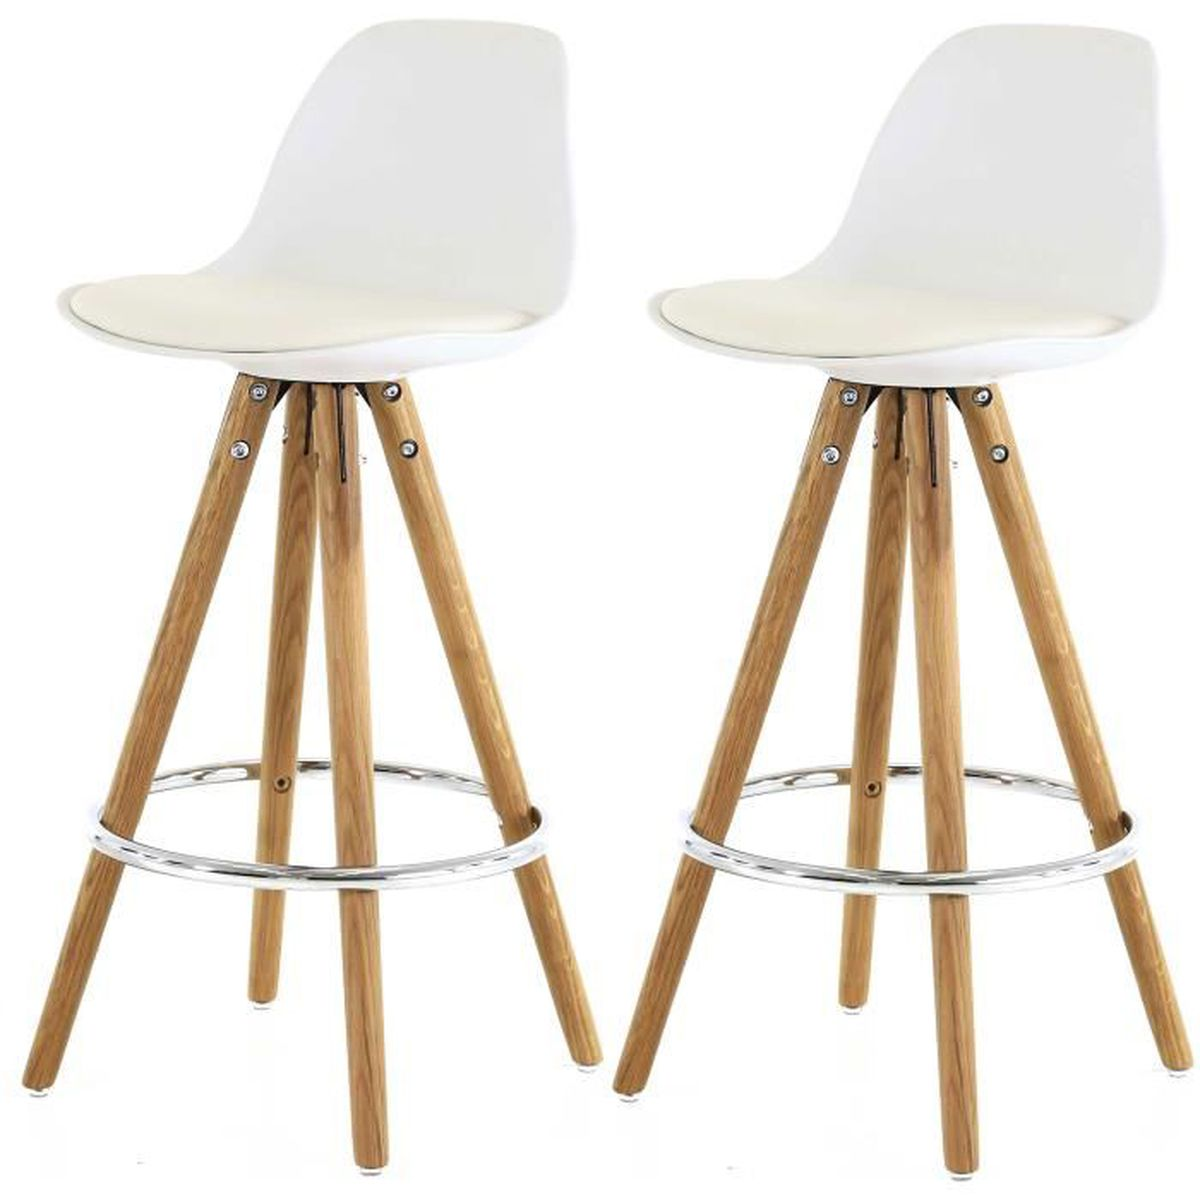 lot de 2 tabourets de bar scandinave blanc uma achat vente tabouret de bar blanc soldes. Black Bedroom Furniture Sets. Home Design Ideas